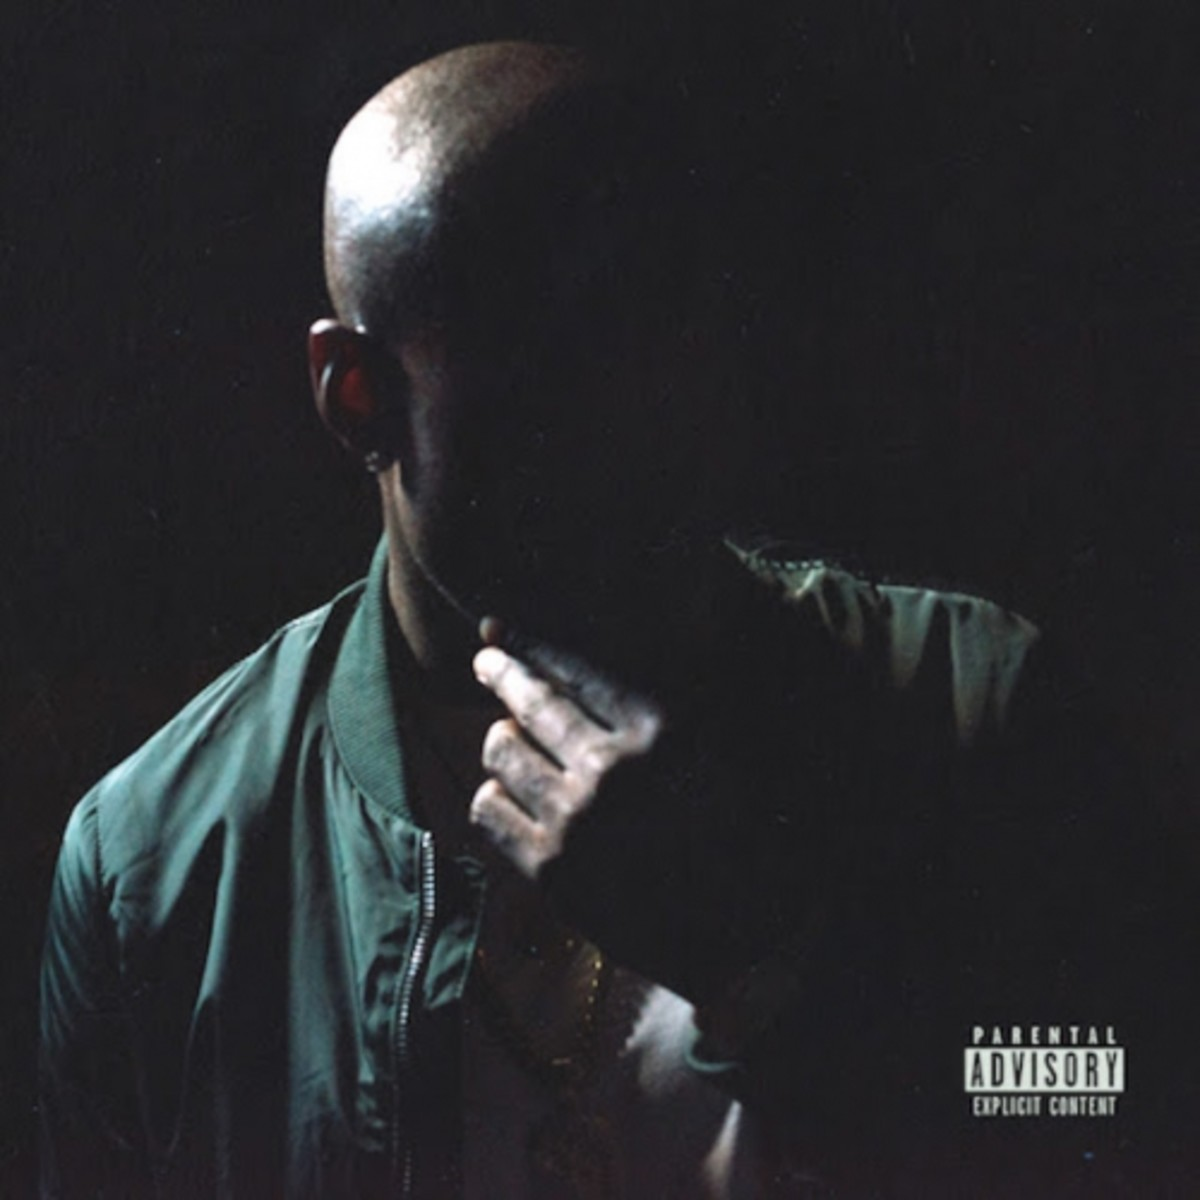 freddie-gibbs-shadow-of-a-doubt.jpg